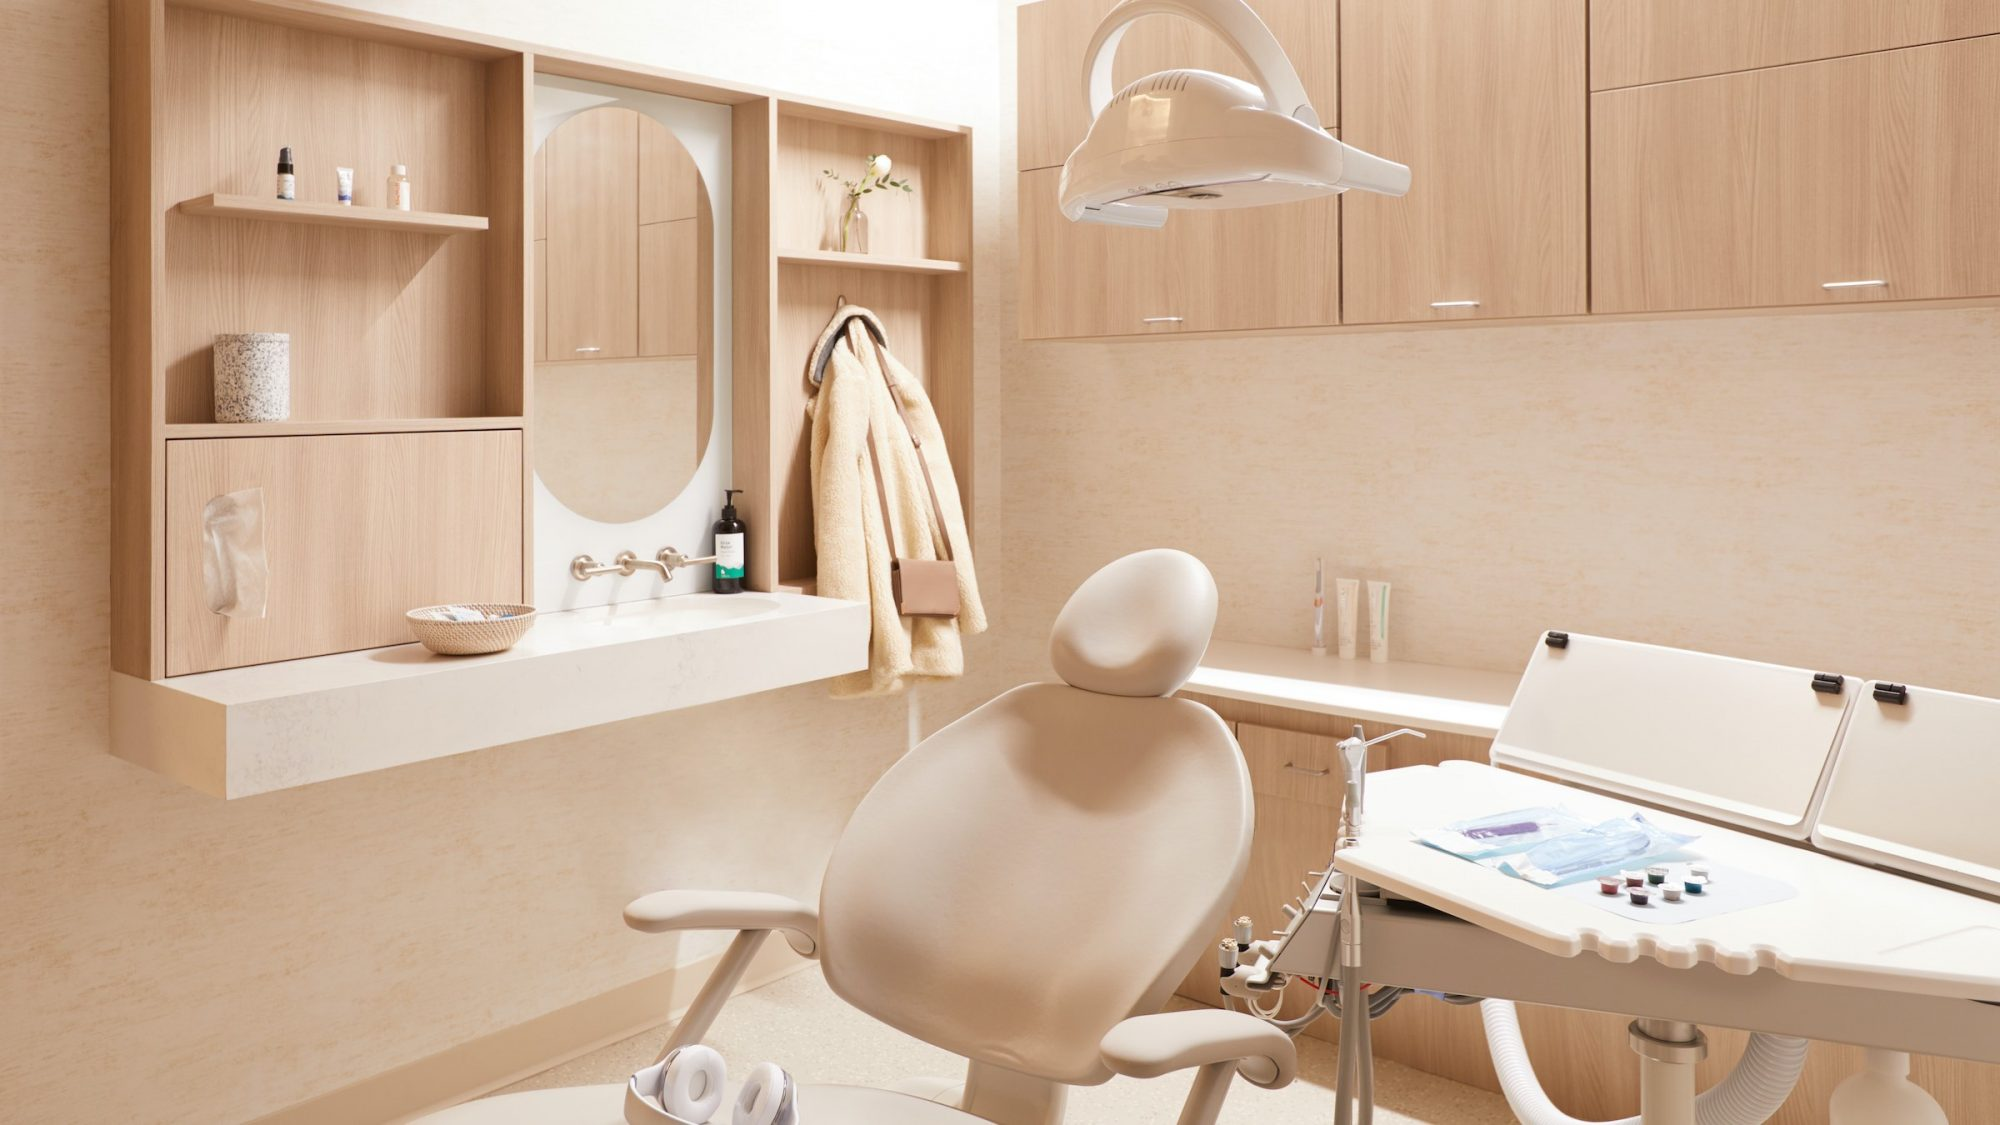 Tend dentist chair studio